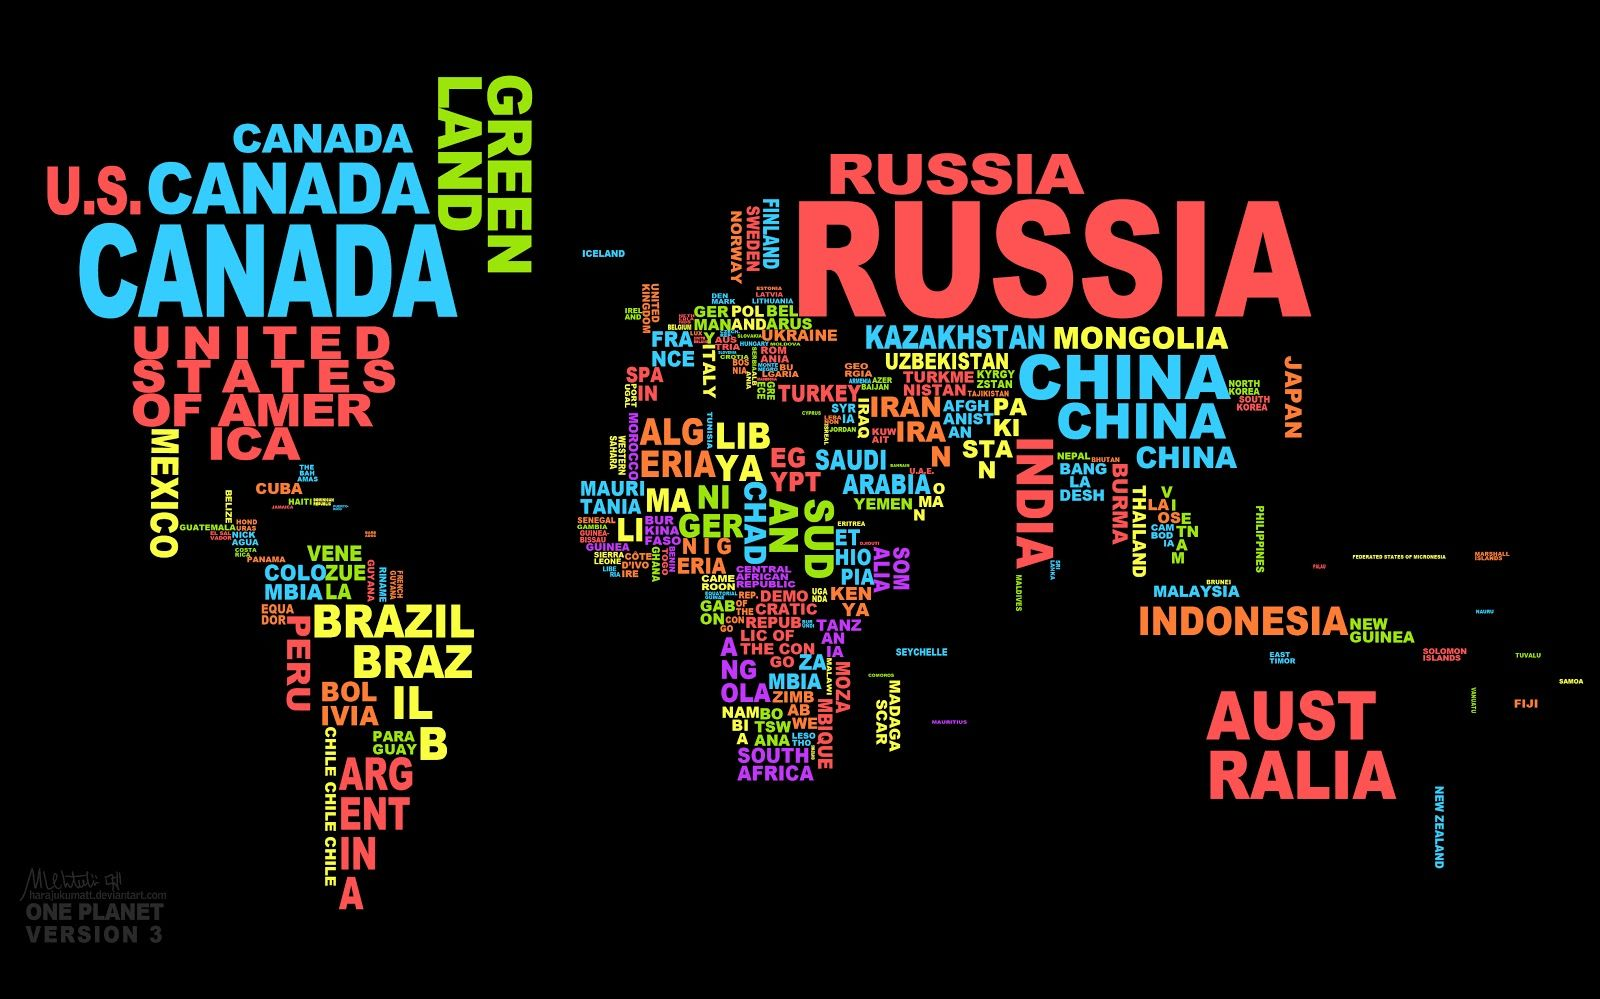 Wallpaper for world map using country name on badooy wallpapers wallpaper for world map using country name on badooy wallpapers gumiabroncs Gallery